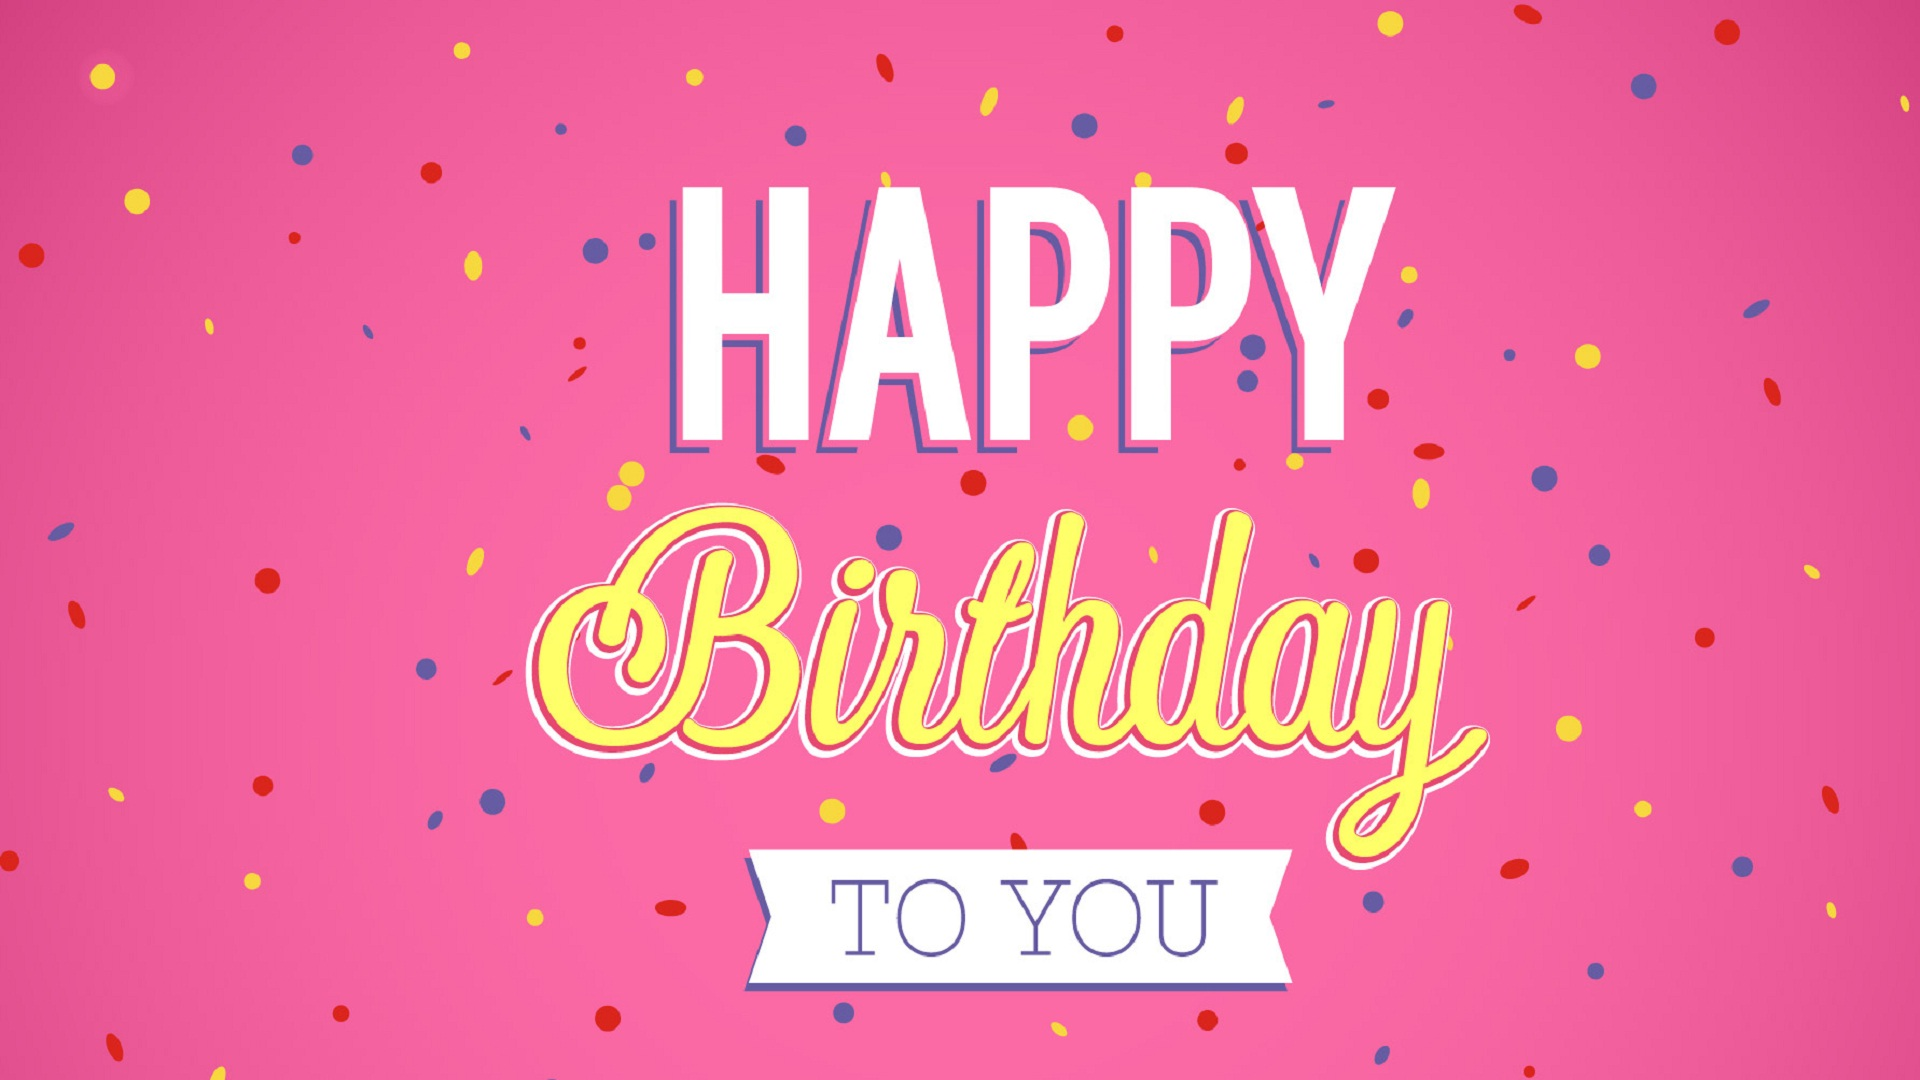 happy birthday to you images hd ; Happy-birthday-to-you-best-wishes1